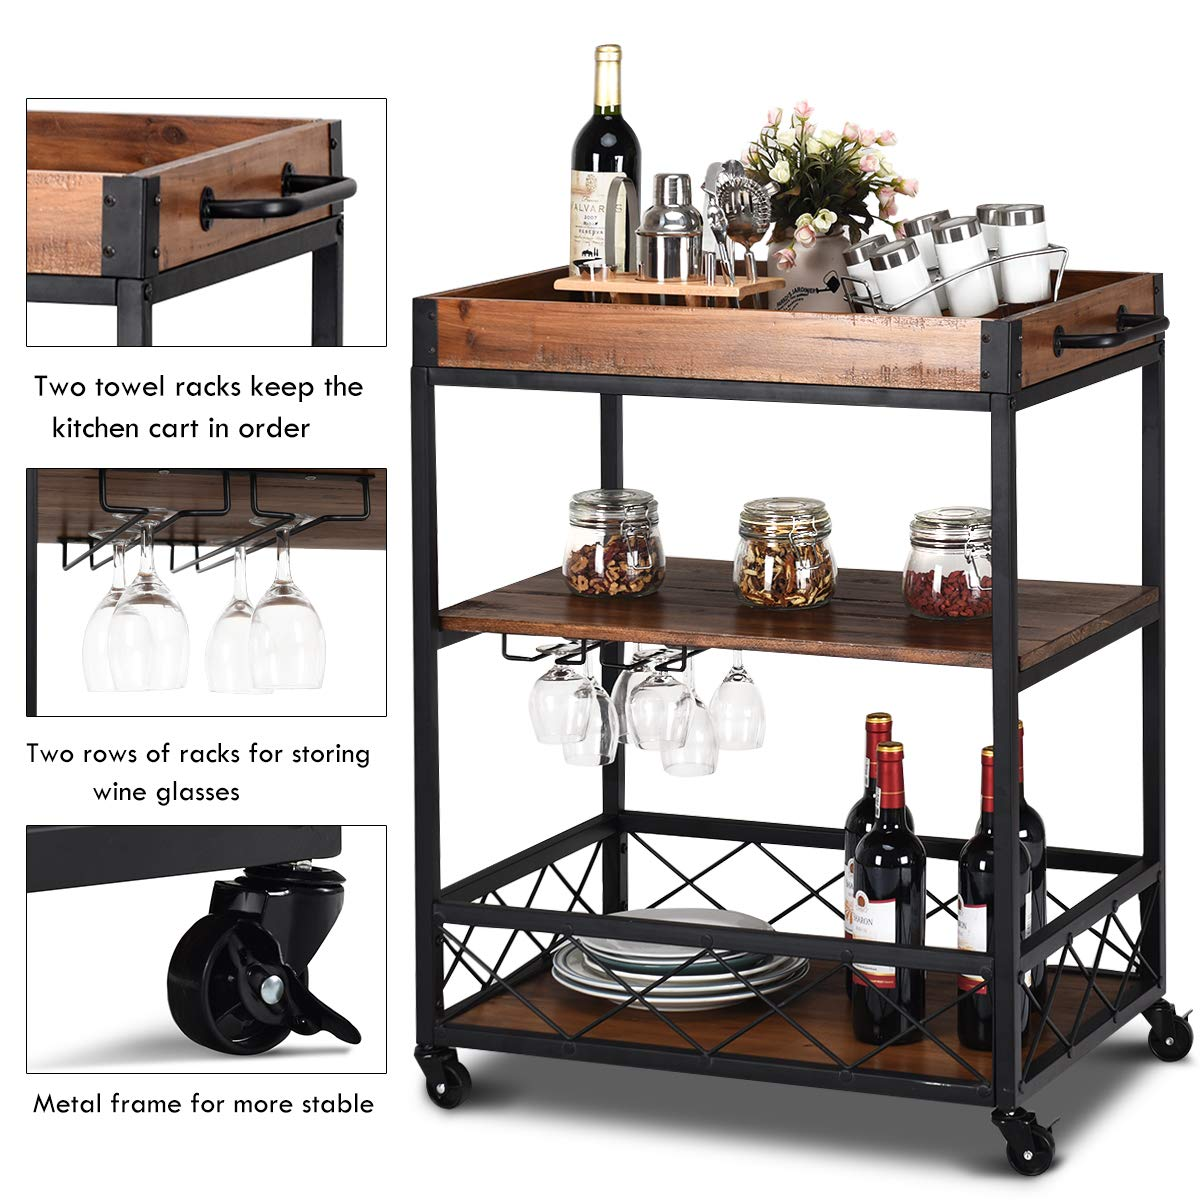 Giantex Kitchen Trolley Cart Island Rolling Serving Carts Utility Cart 3 Tier Storage Shelf with Glass Holde, Handle Racks, Lockable Caster Wheels Kitchen Carts Islands w/Removable Wood Box Container by Giantex (Image #5)